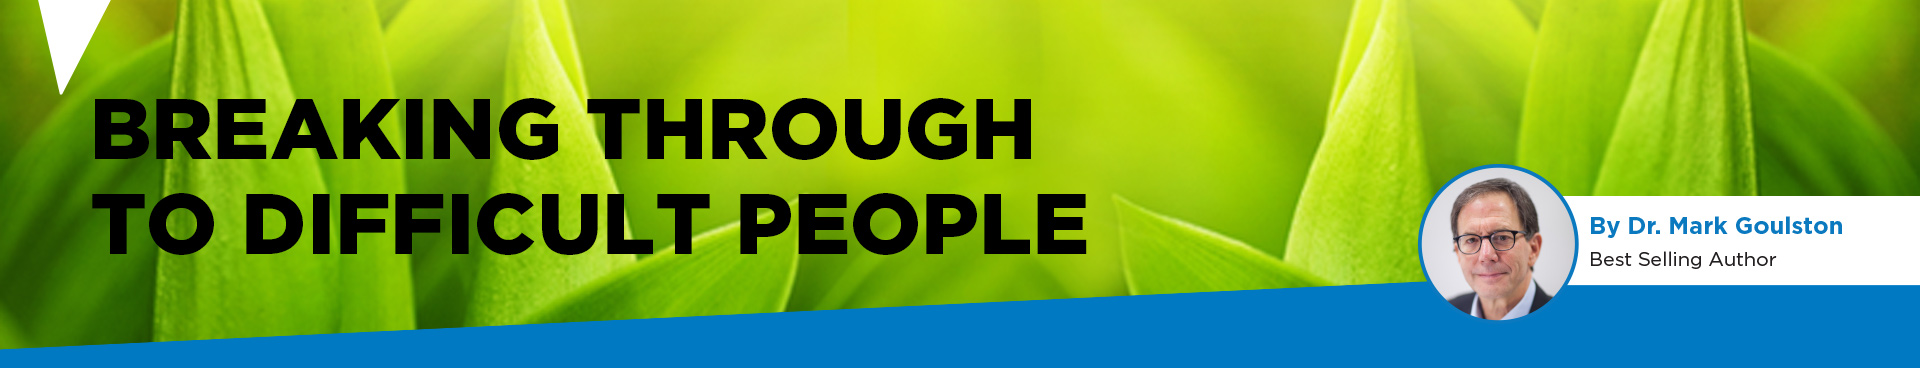 banner for breaking through to difficult people article